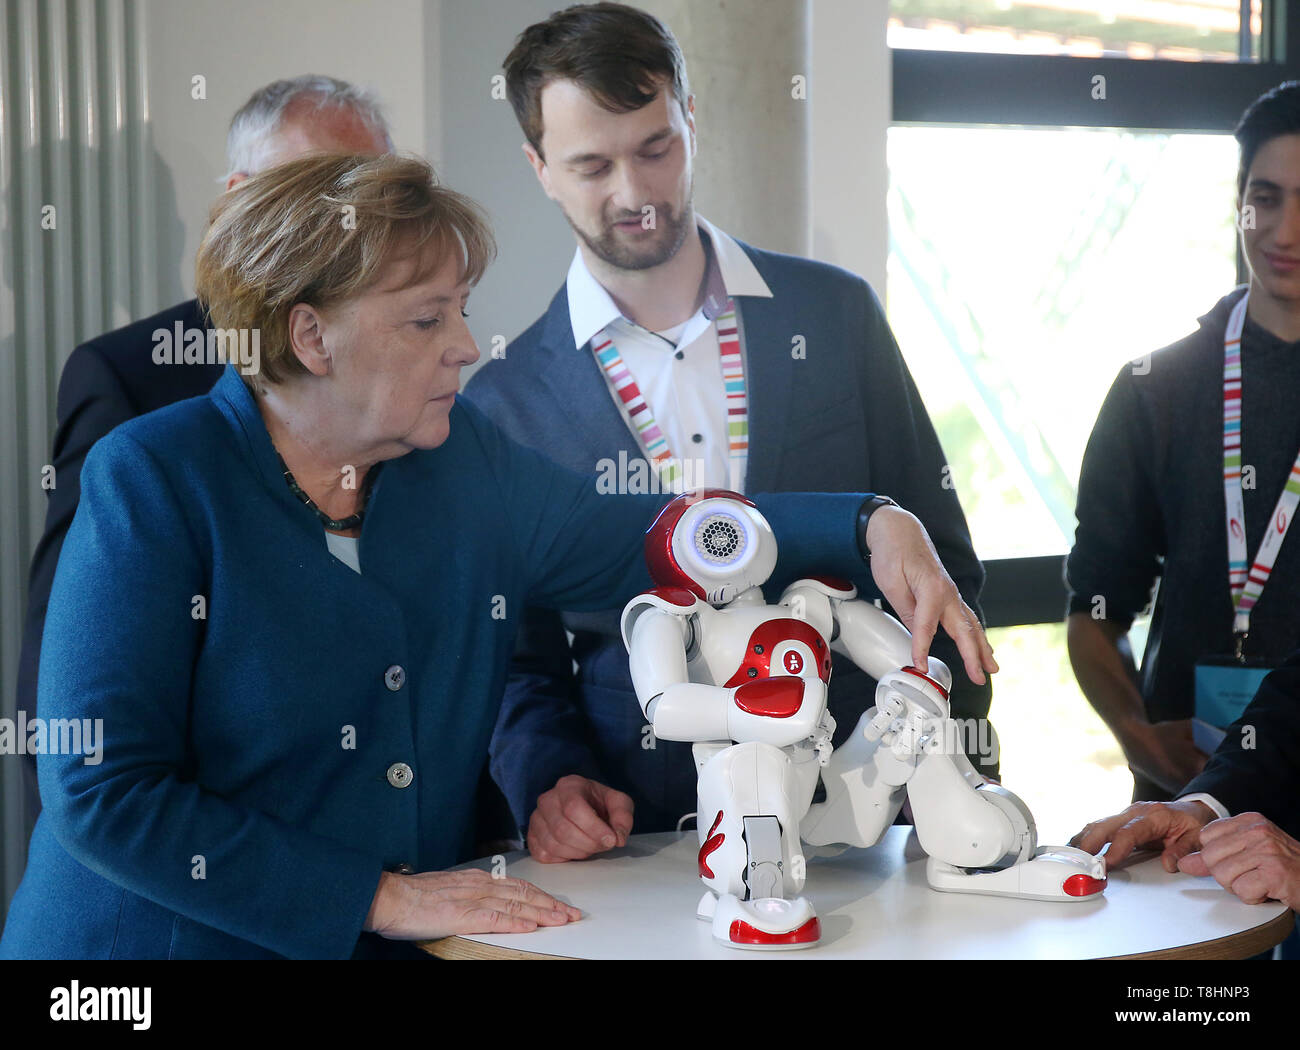 Wuppertal, Germany. 13th May, 2019. Chancellor Angela Merkel (l, CDU) plays with a robot at the Junior University. The Wuppertal Junior University is a nationwide unique extracurricular educational and research institution for 4 to 20 year olds. Credit: Oliver Berg/dpa/Alamy Live News - Stock Image